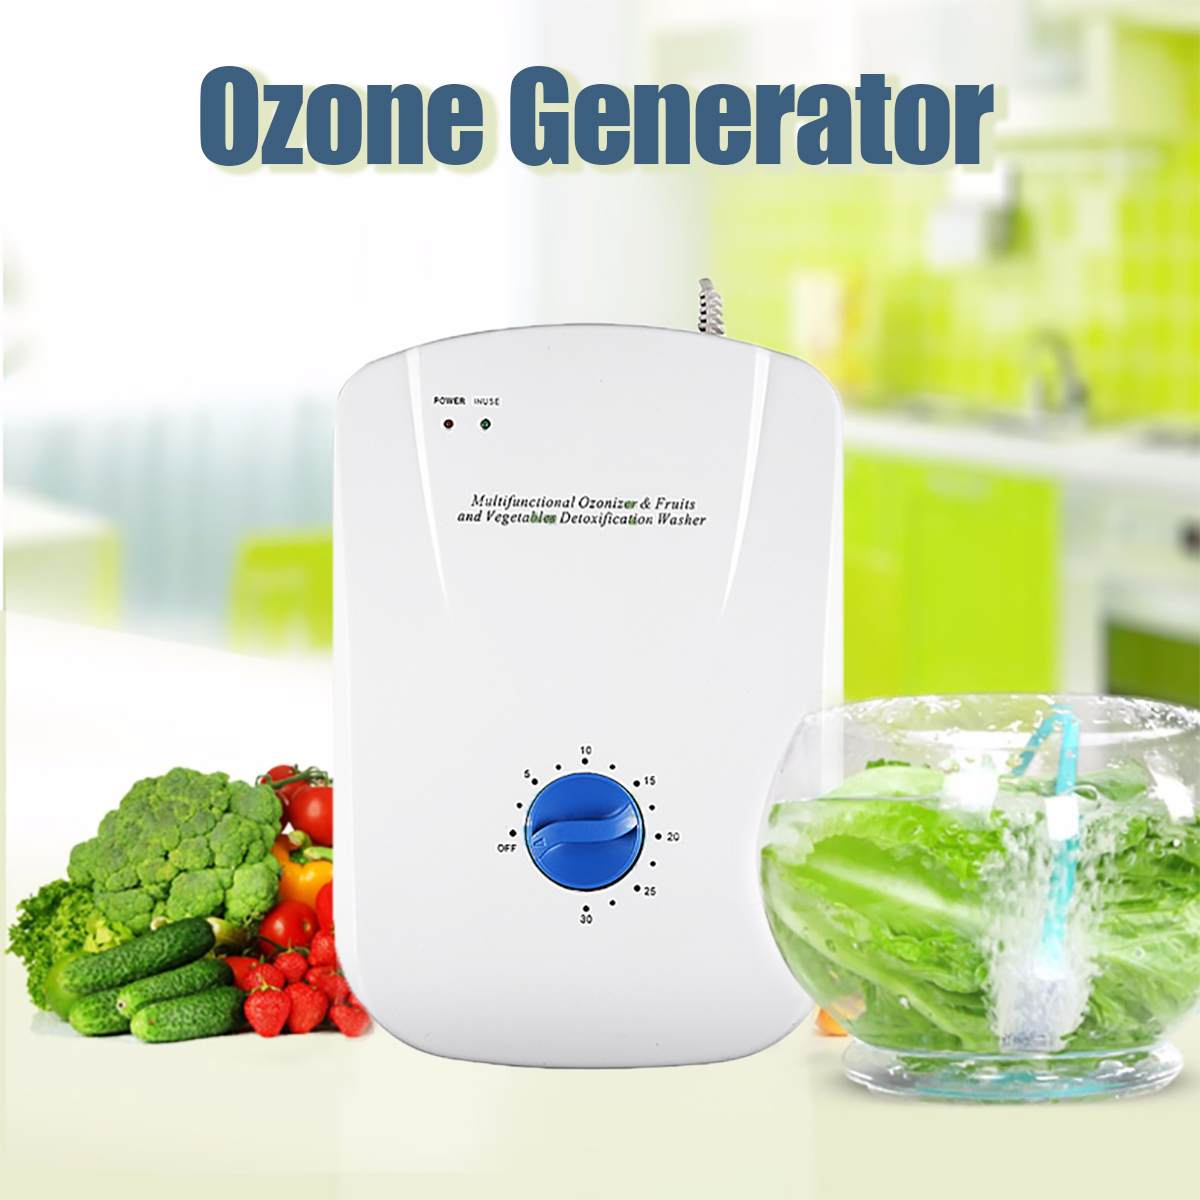 Portable Active Ozone Generator Sterilizer Air purifier Purification Fruit Vegetables water food Preparation ozonator ionizatorPortable Active Ozone Generator Sterilizer Air purifier Purification Fruit Vegetables water food Preparation ozonator ionizator